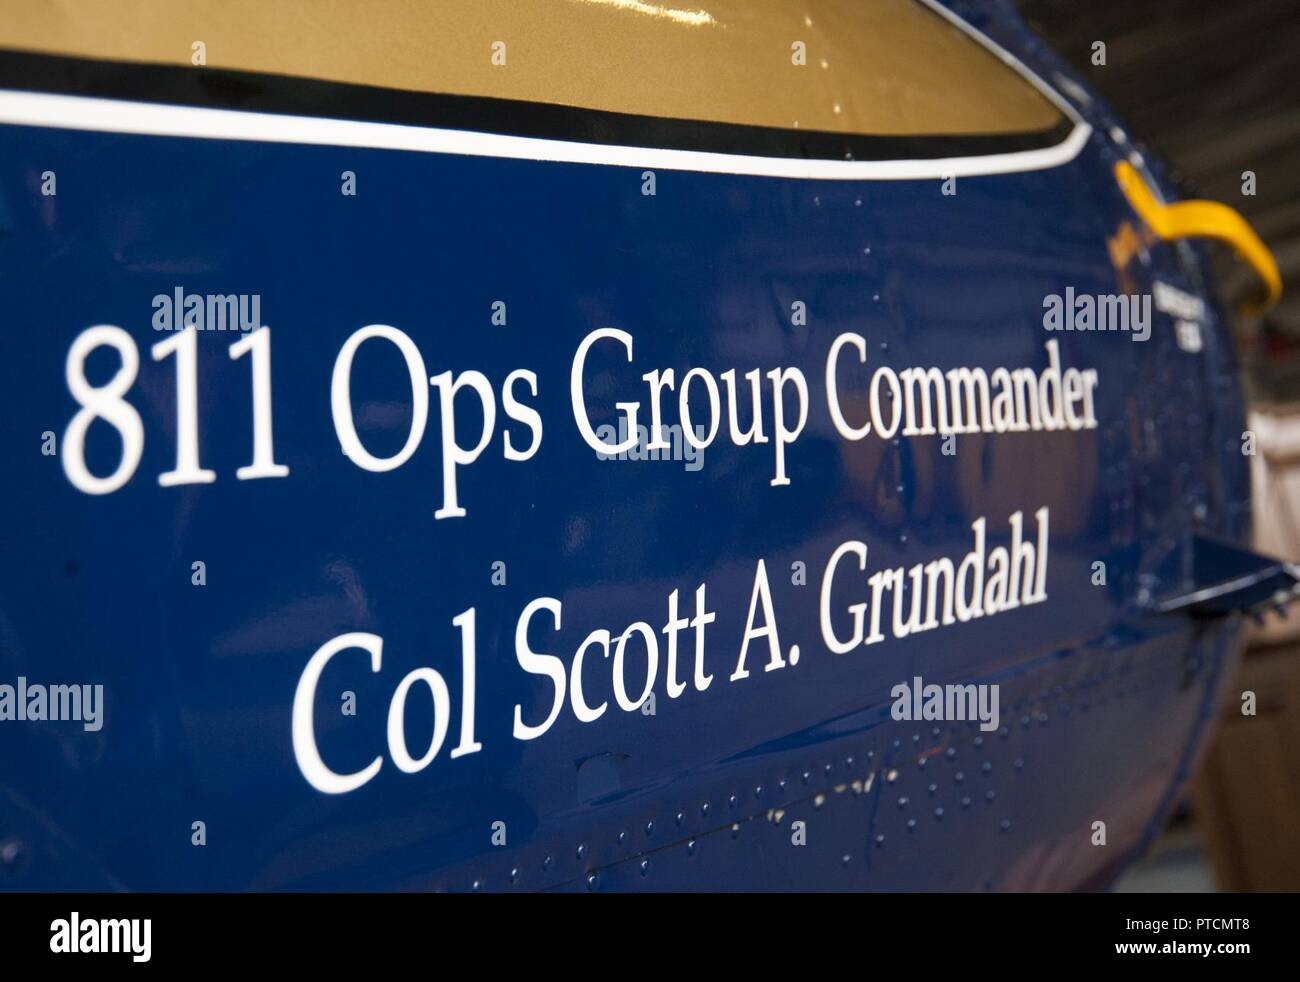 The 811th Operations Group unveiled incoming commander Col. Scott A. Grundahl's name on a UH-1N Iroquois helicopter during the group's change of command ceremony at Joint Base Andrews, Md., July 7, 2017. The group consists of the 811th Operations Support Squadron and the 1st Helicopter Squadron both of which provide the National Capital Region with continuous rotary-wing contingency response. - Stock Image